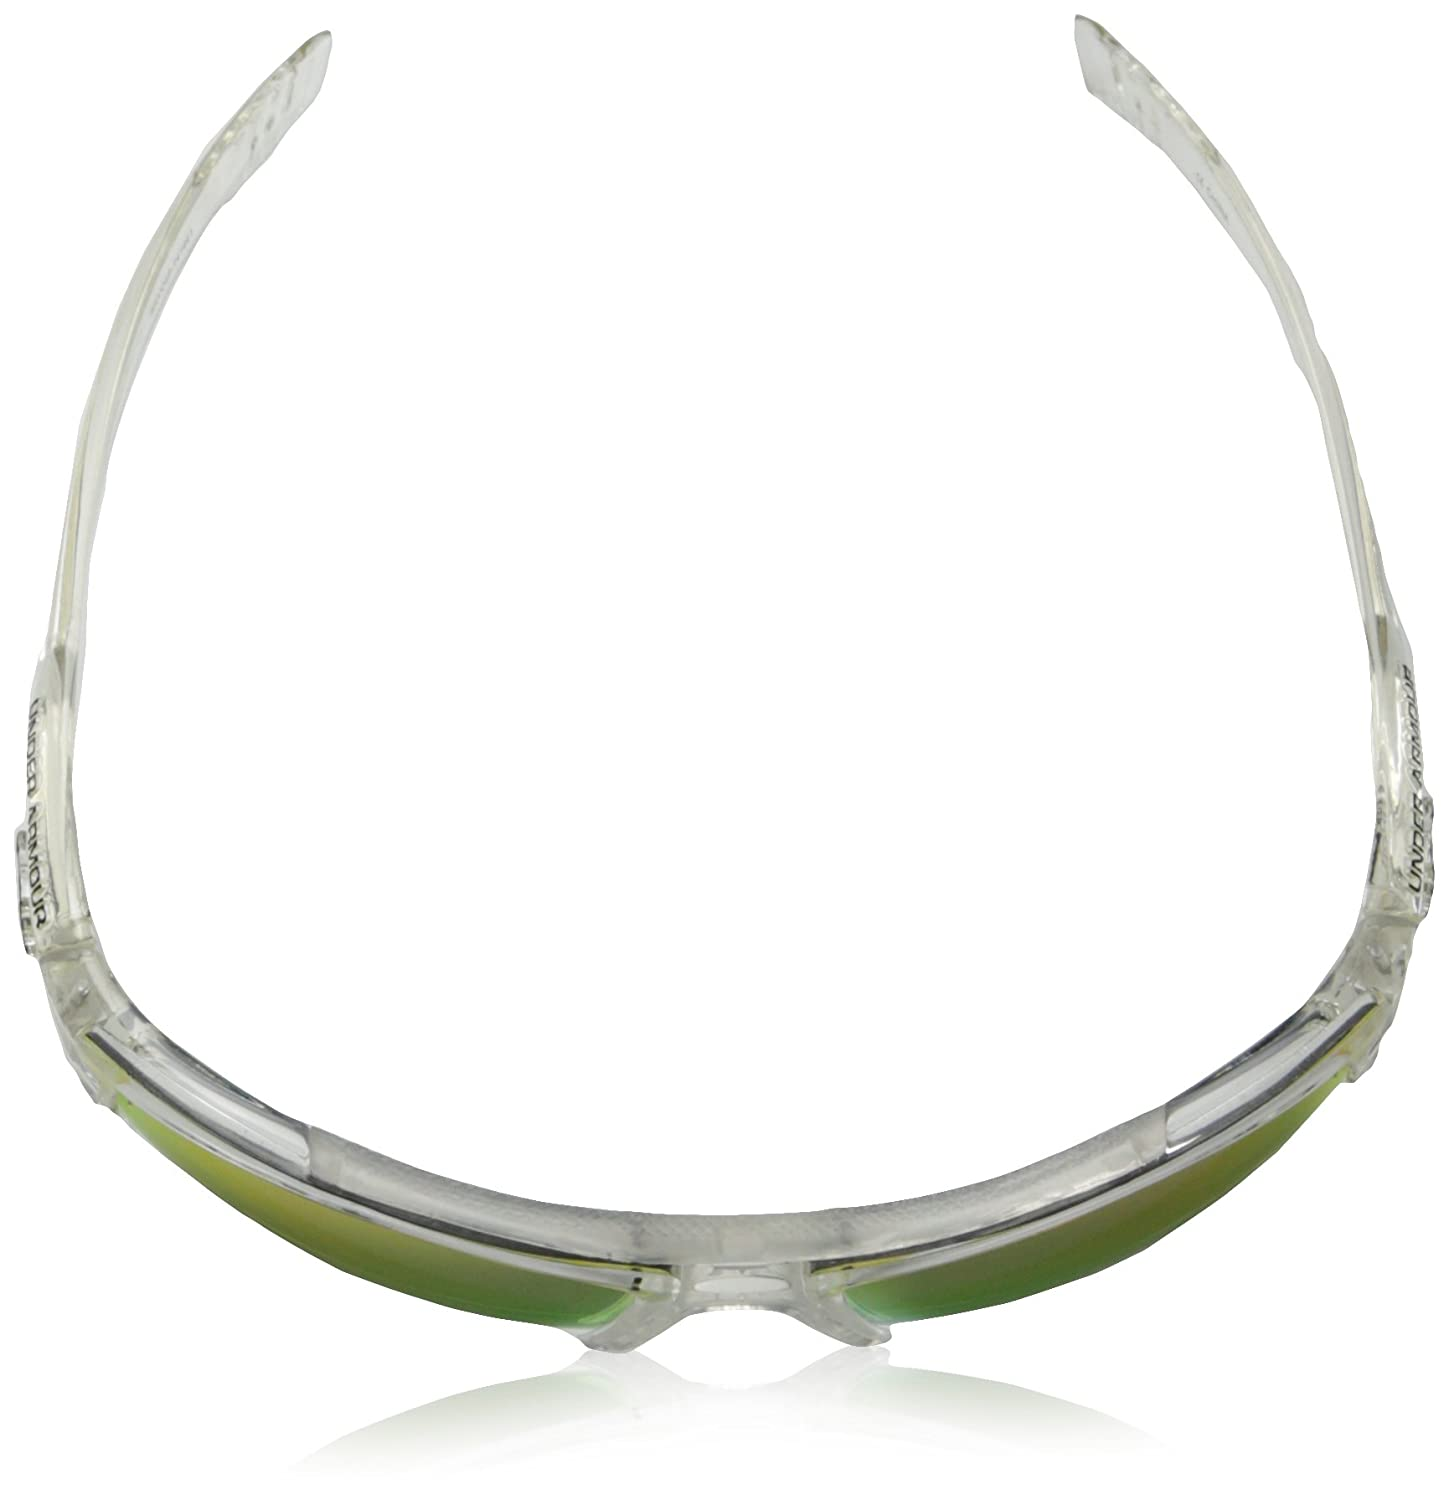 966c849a7 Under Armour Nitro L Youth Large 8600048-141441 Sunglasses Shiny Crystal  Clear 59 mm